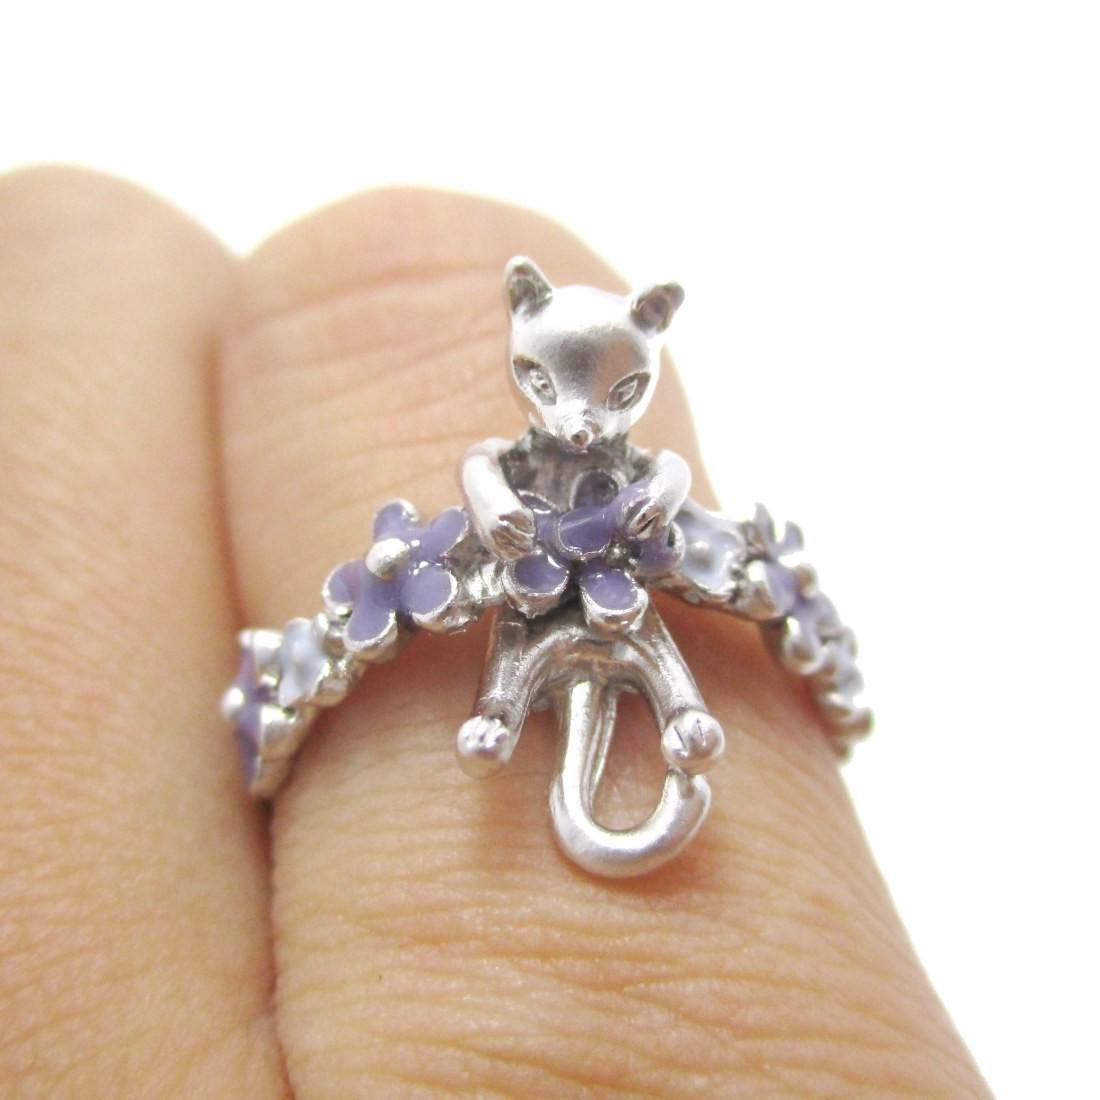 3D Kitty Cat Shaped Animal Floral Daisy Ring in Silver